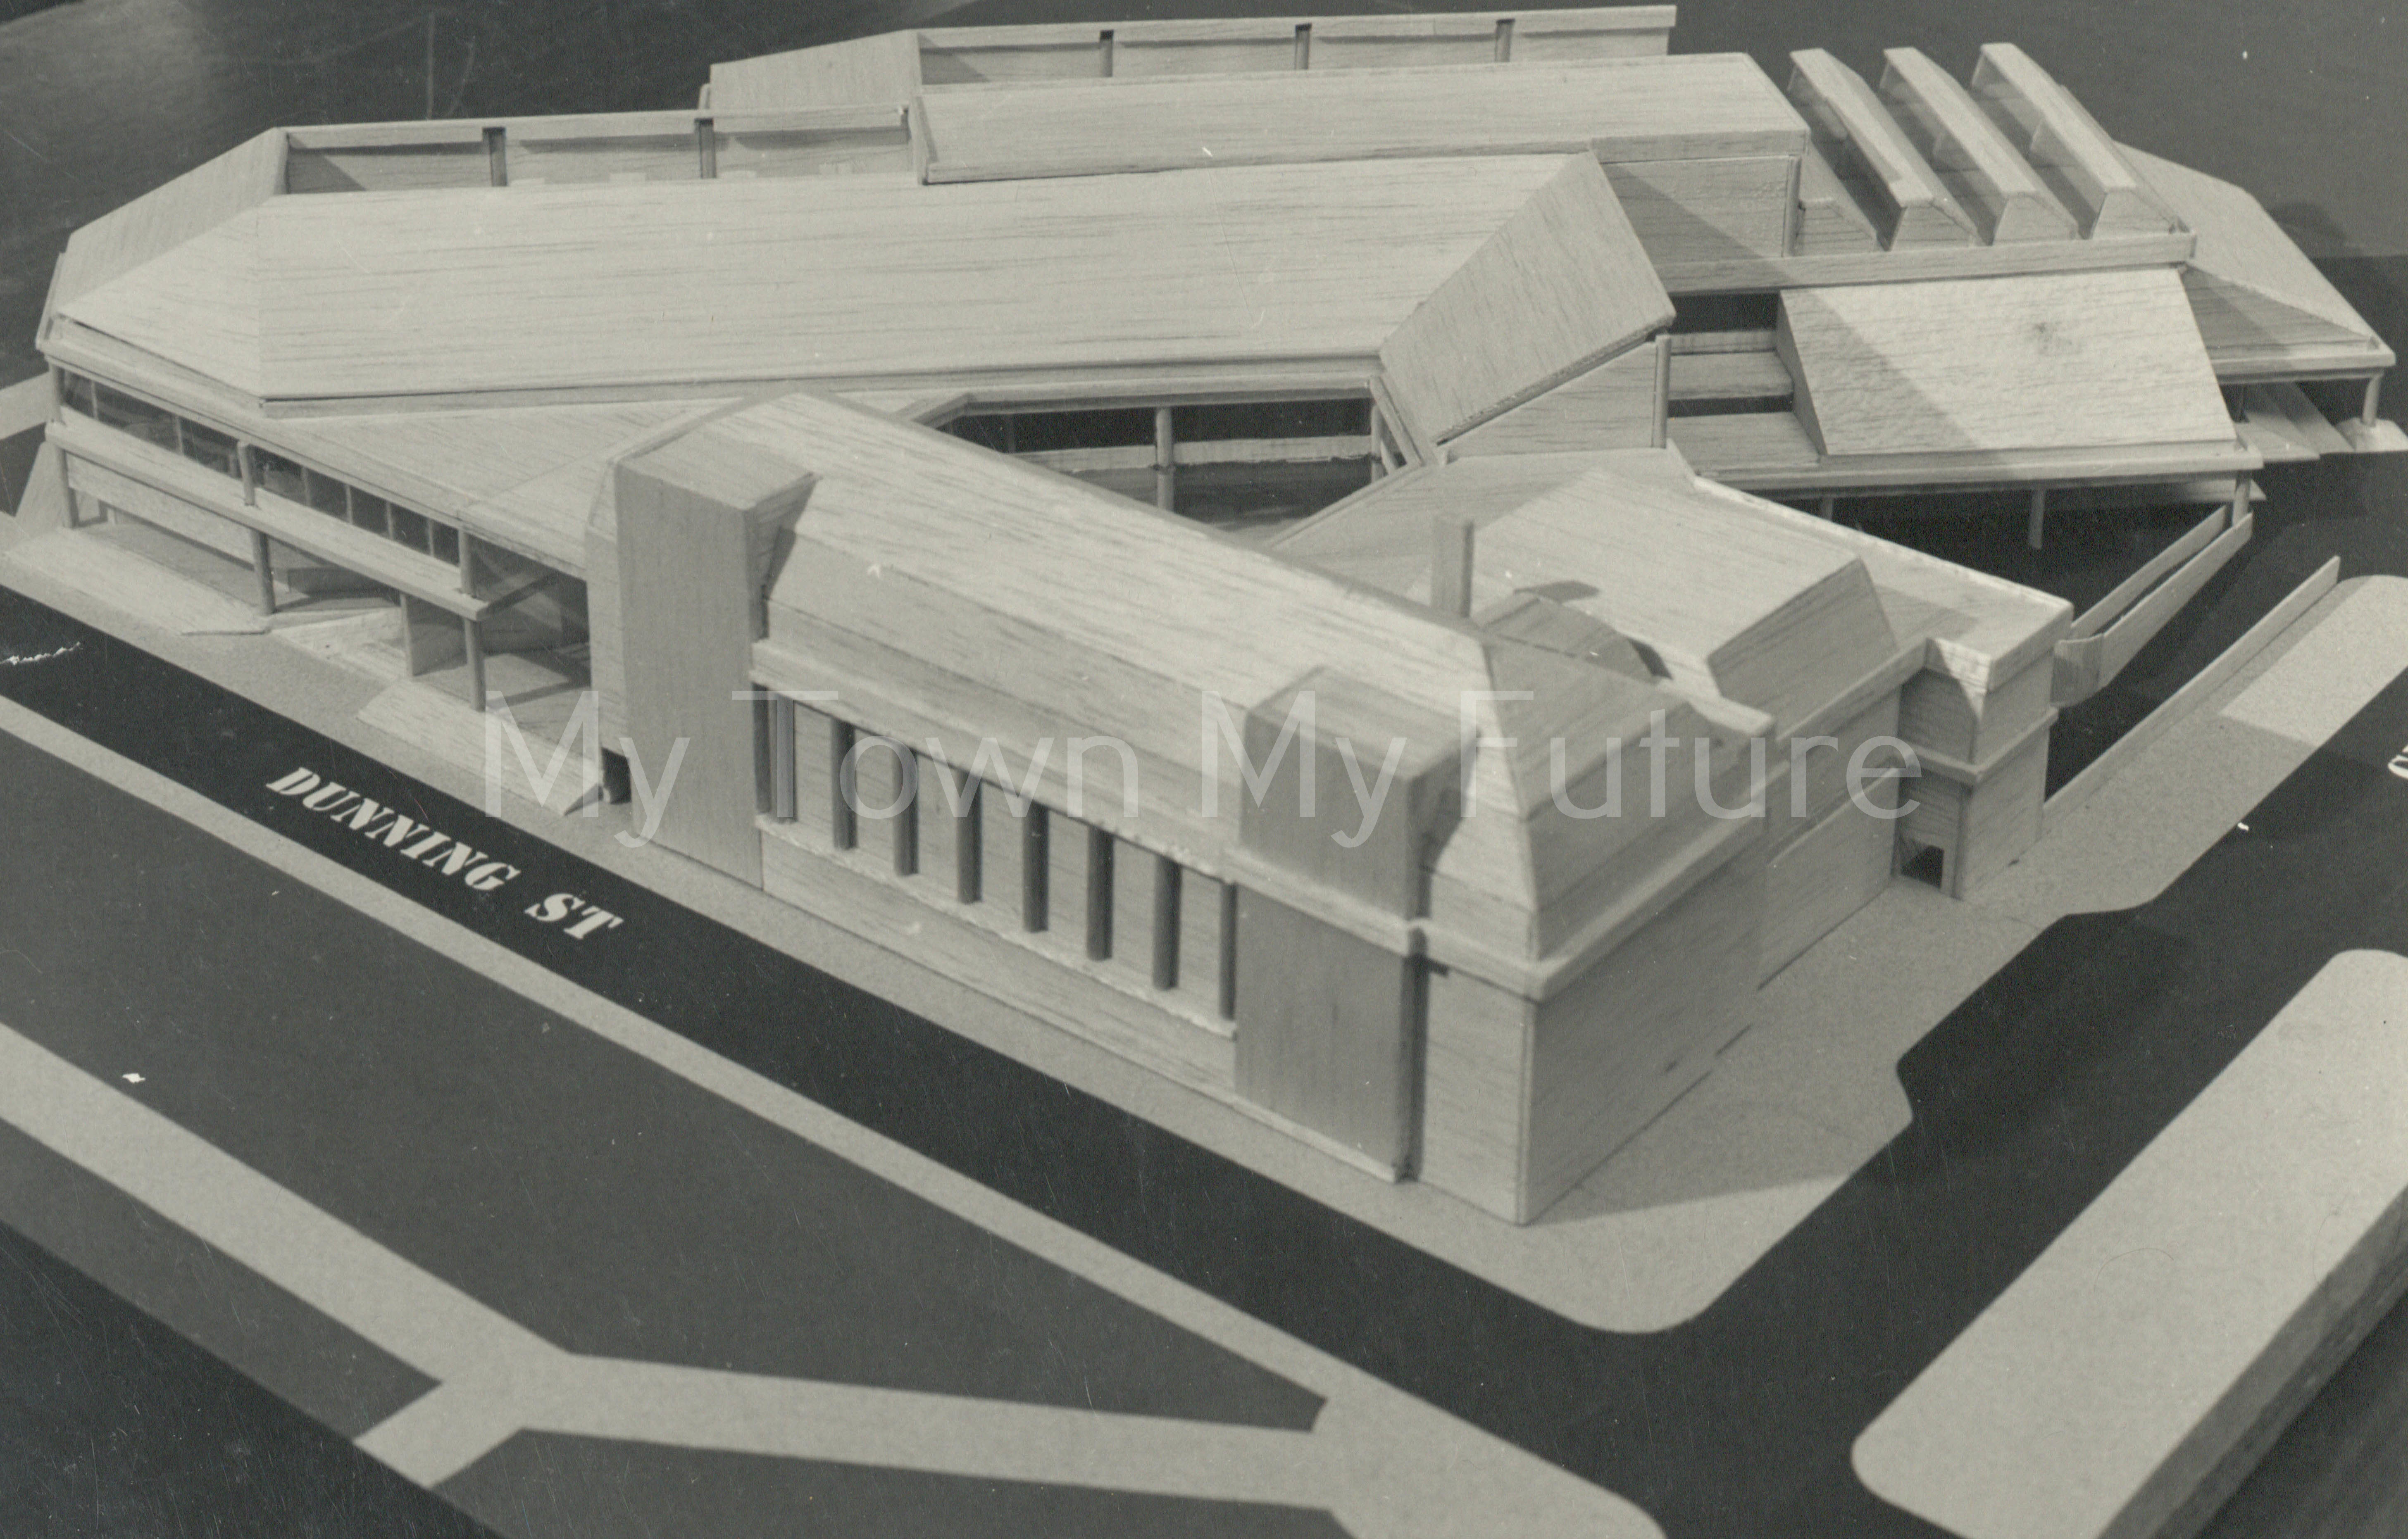 Central Library extension model of proposed redevelopment, 1980 - Department of Planning - Cleveland County Council